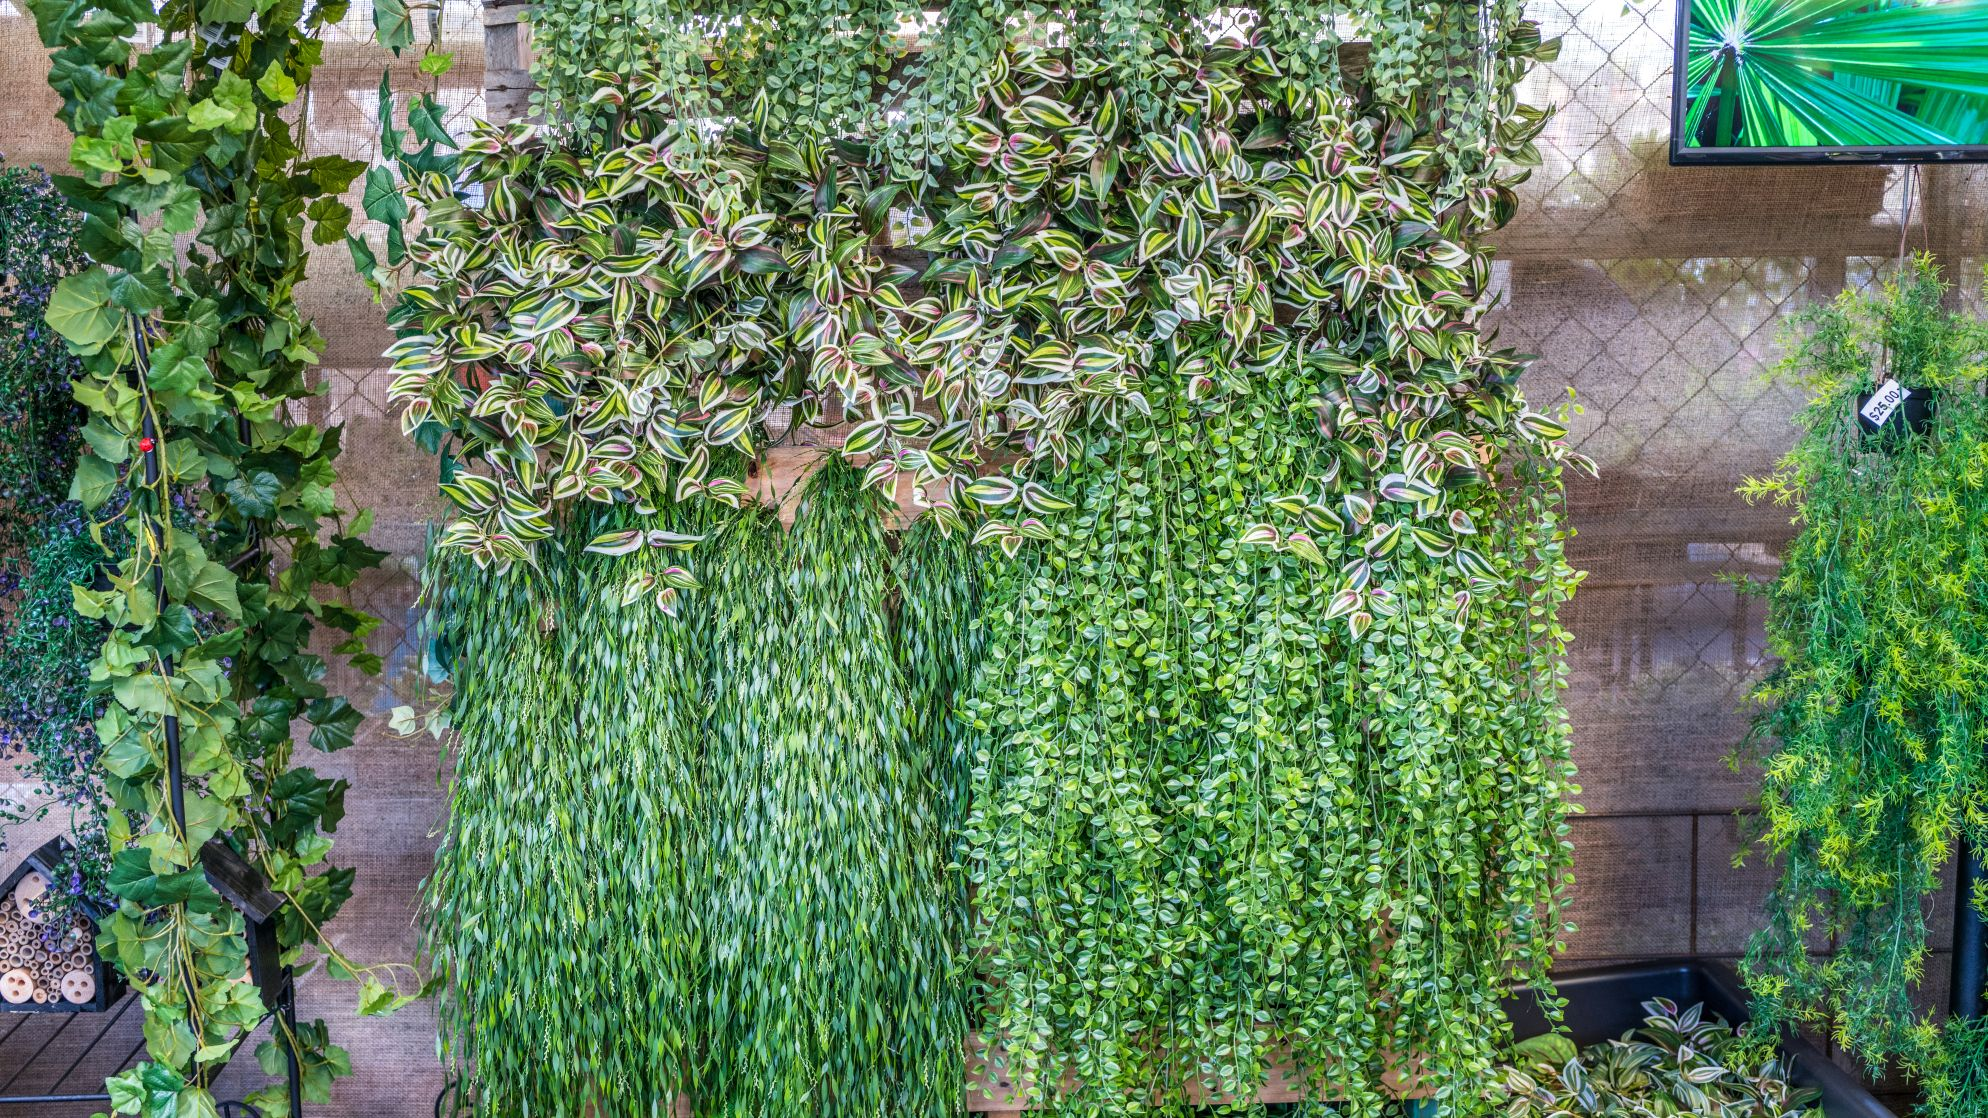 Vertical garden at the 2019 Queensland Garden Expo